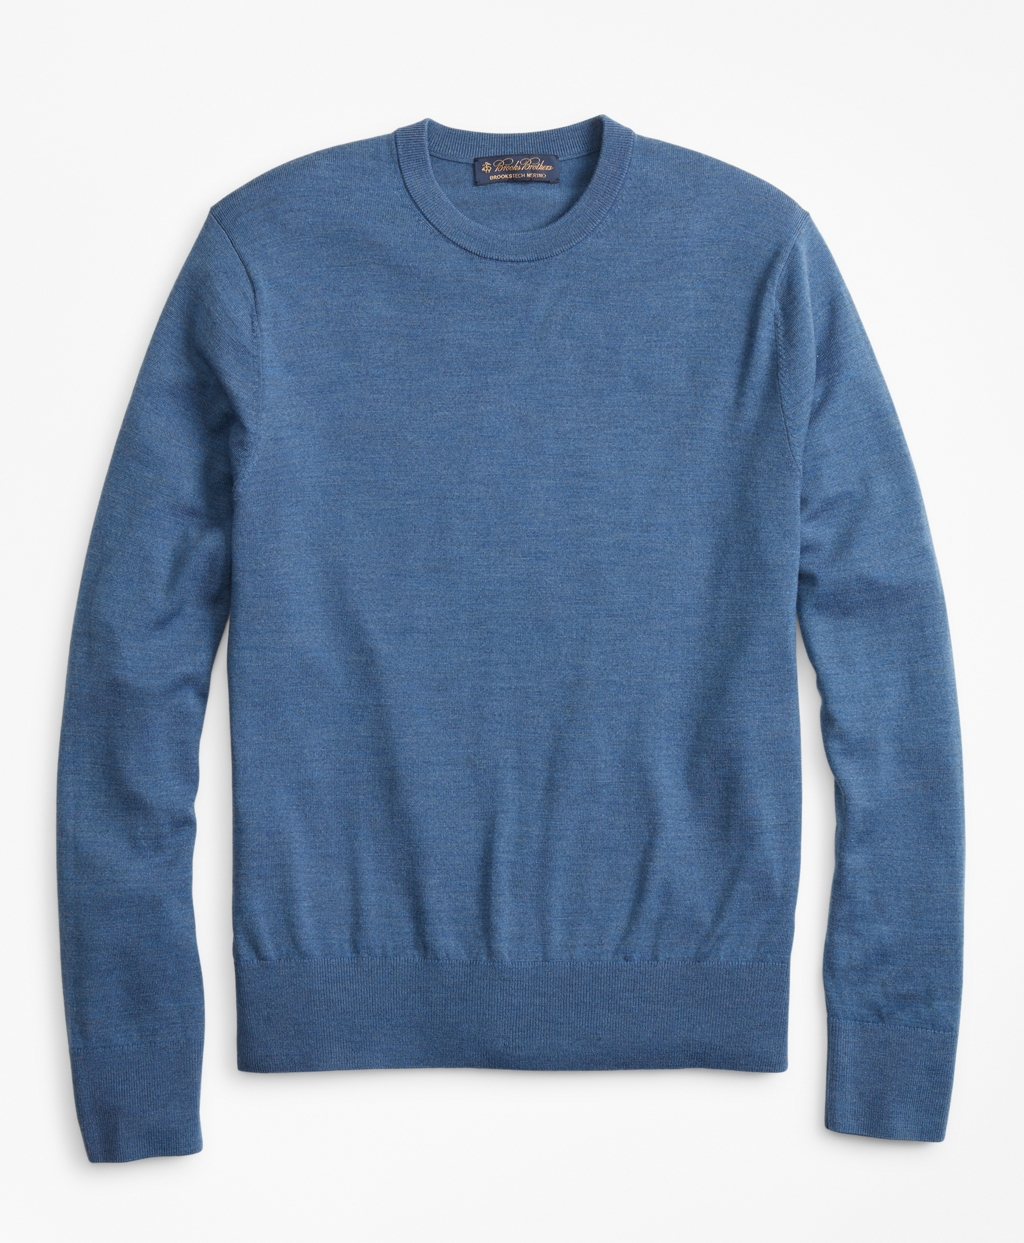 be9a162d25 BrooksTech Merino Wool Crewneck Sweater | Brooks Brothers